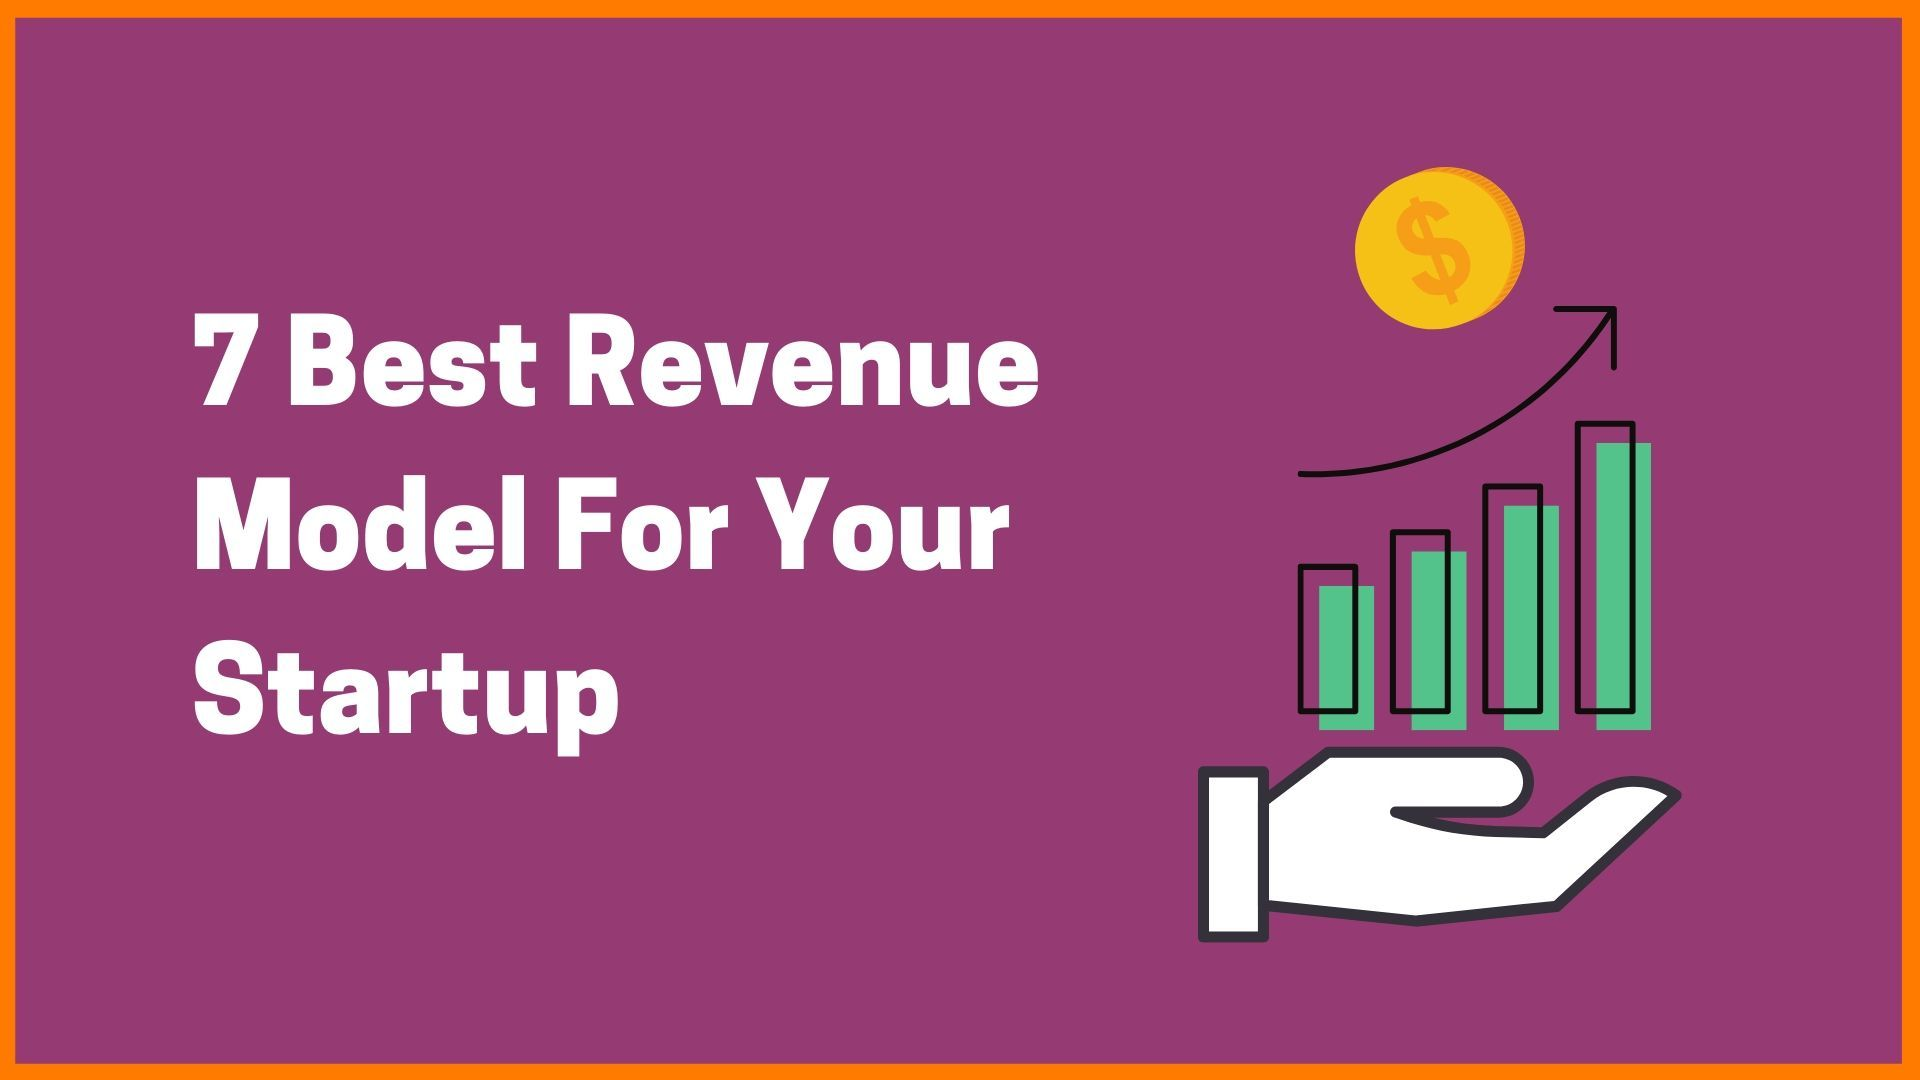 7 Best Revenue Model for Your Startup in 2020